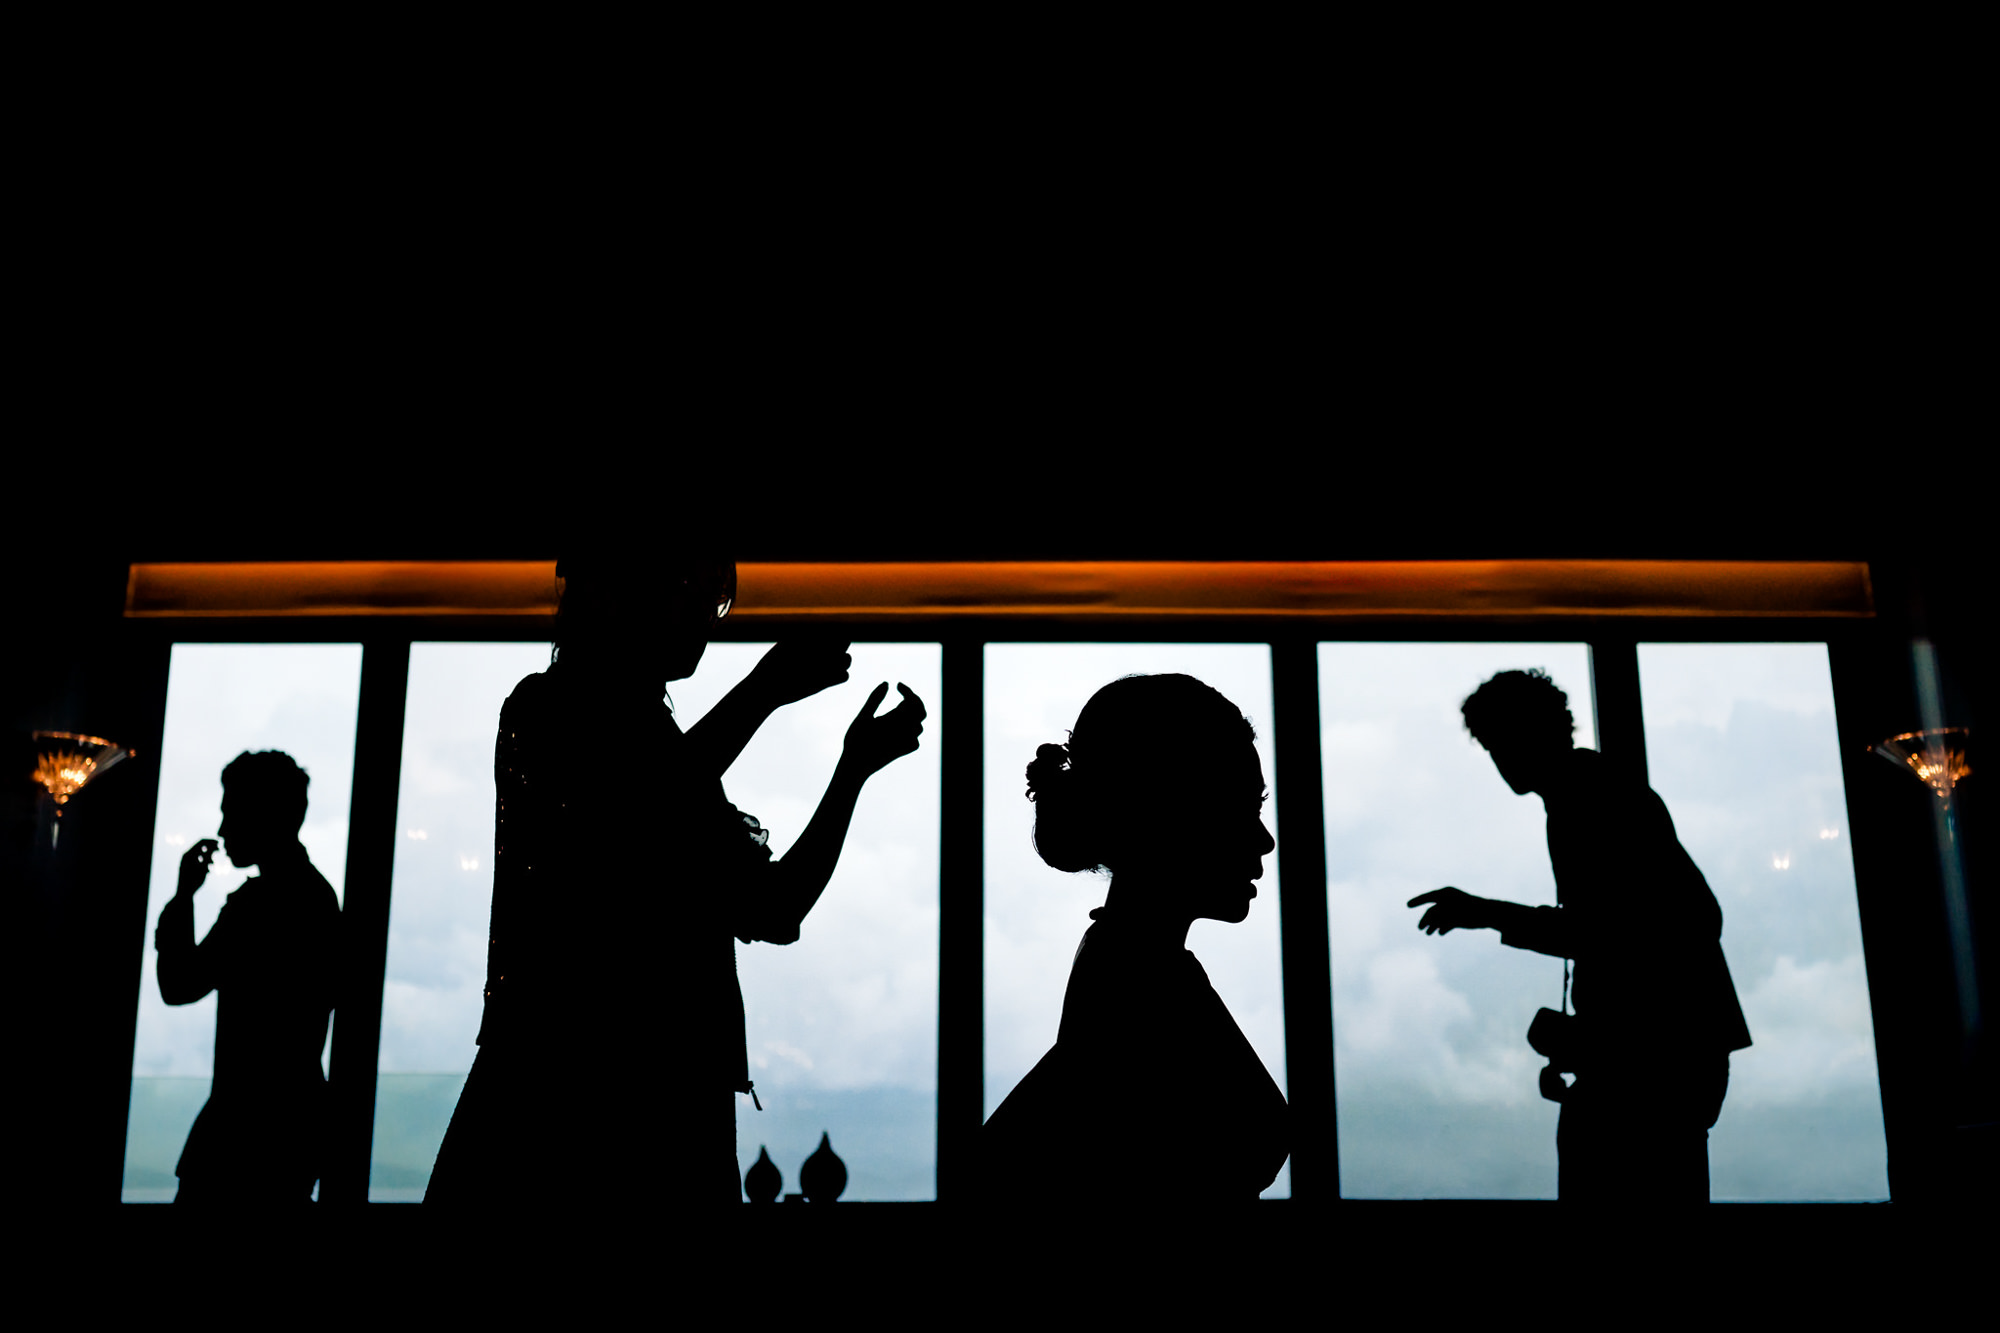 Bride silhouette with others - photo by Two Mann Studios